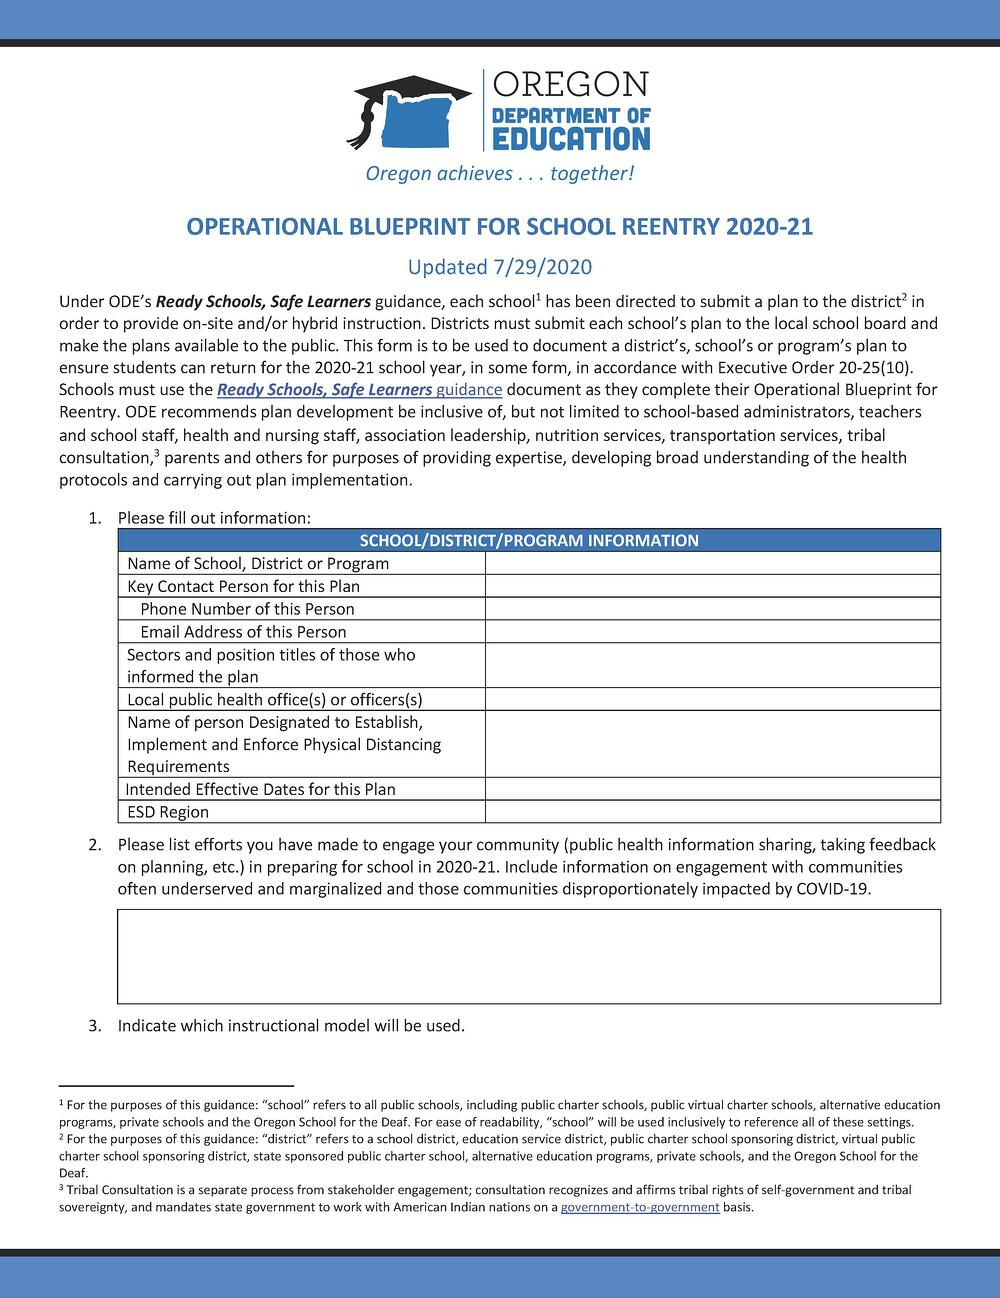 Operational Blueprint Template-2